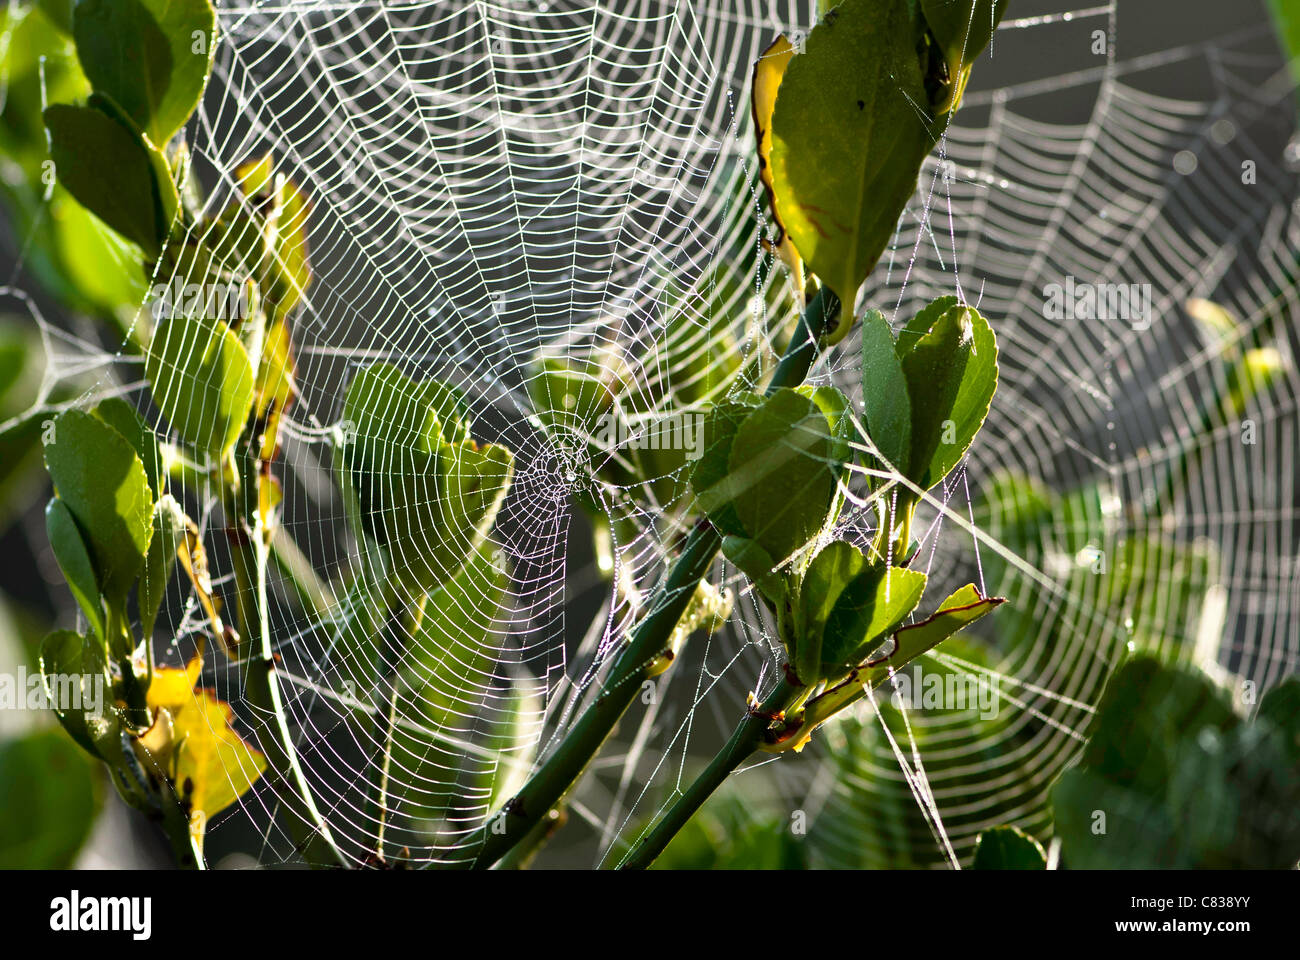 Spiders webs with dew on plant. - Stock Image